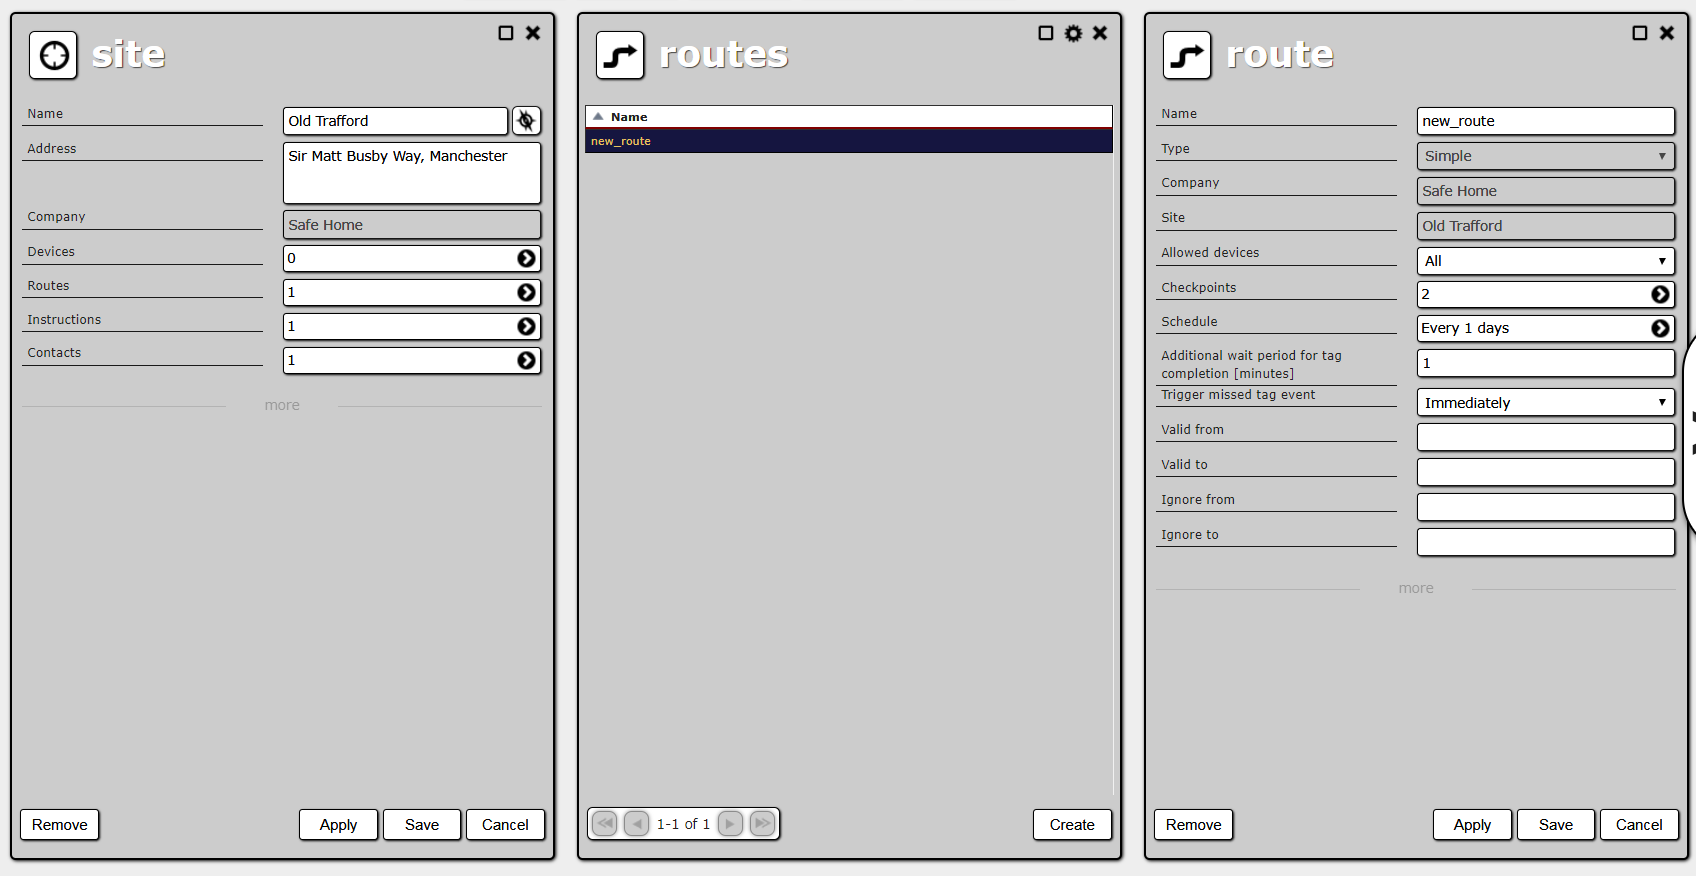 Site details, route list and route creation